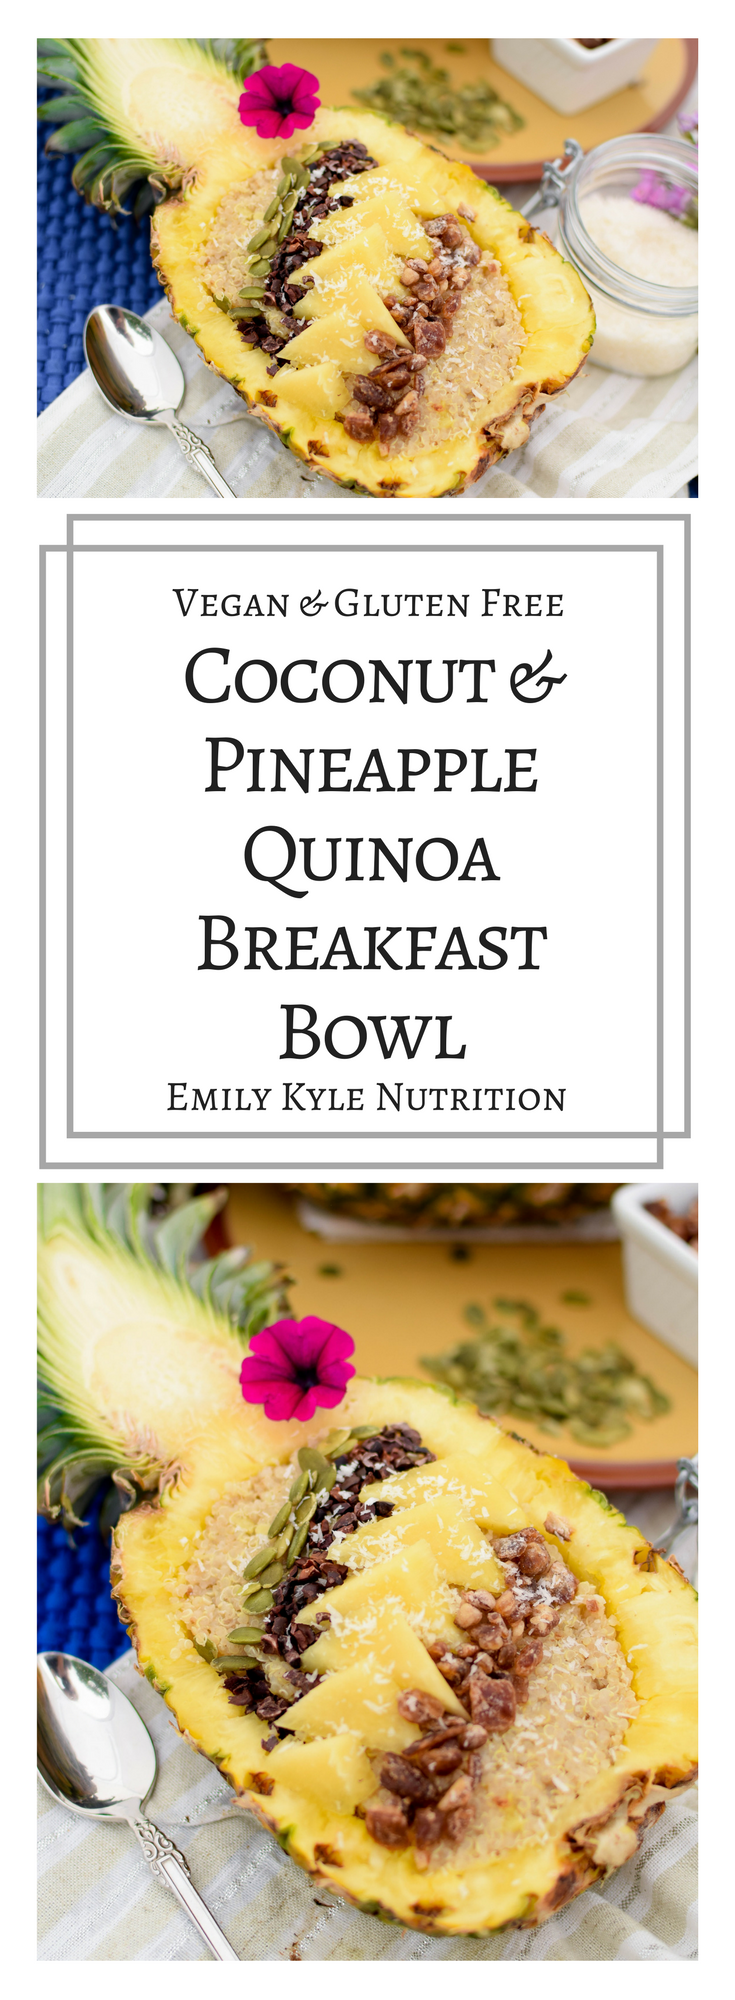 Enjoy a high protein, plant-based Coconut Pineapple Quinoa Breakfast Bowl all week long with an easy, meal-prep option as well!